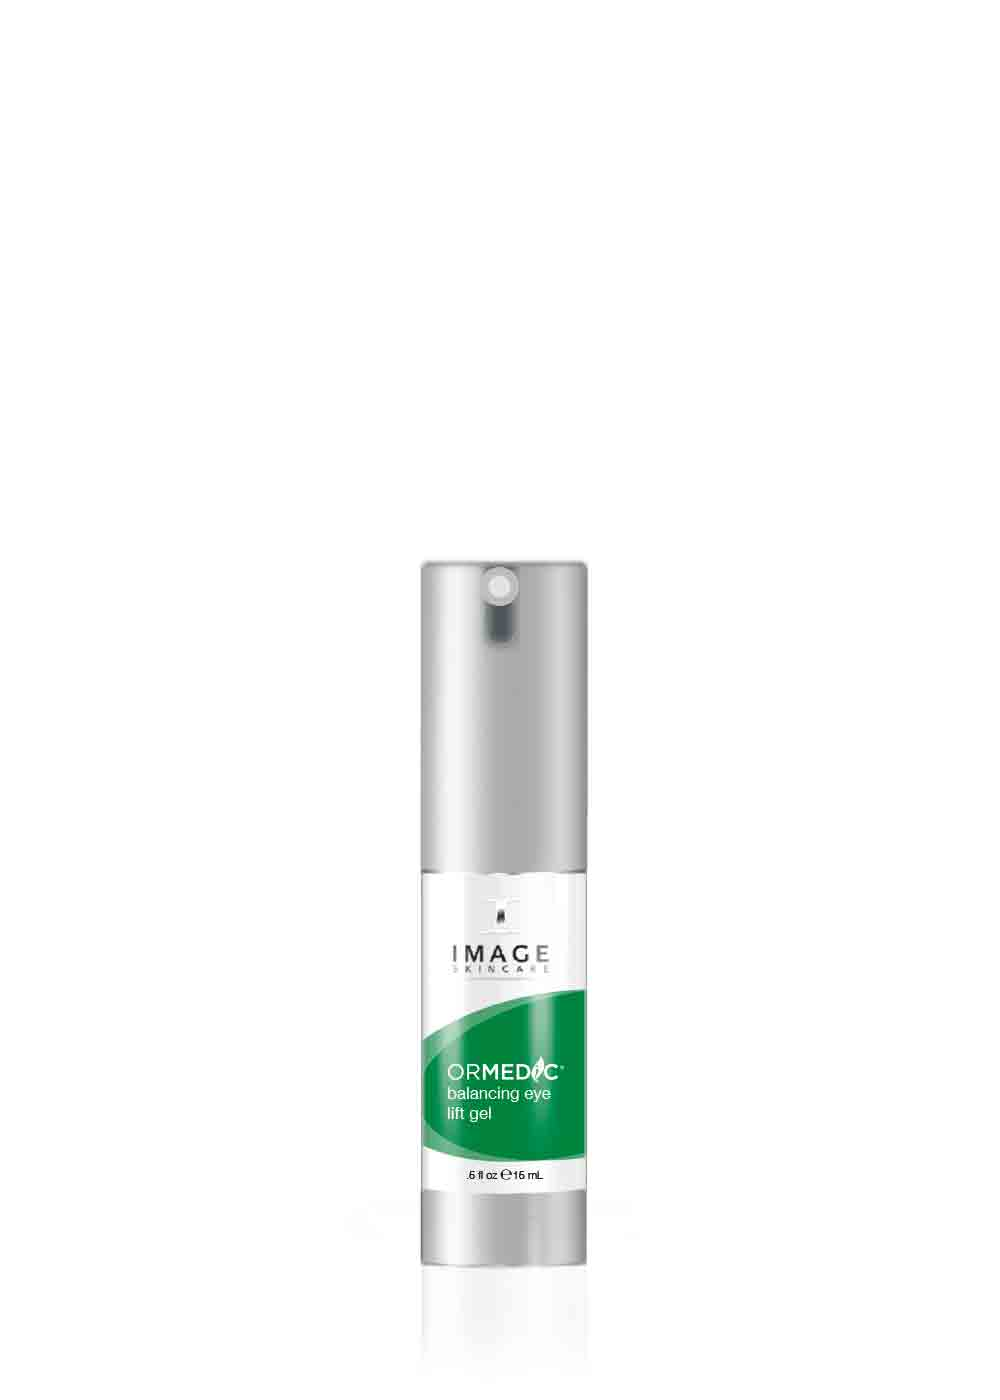 ORMEDIC    balancing eye lift gel gel pour les yeux lifting équilibrant